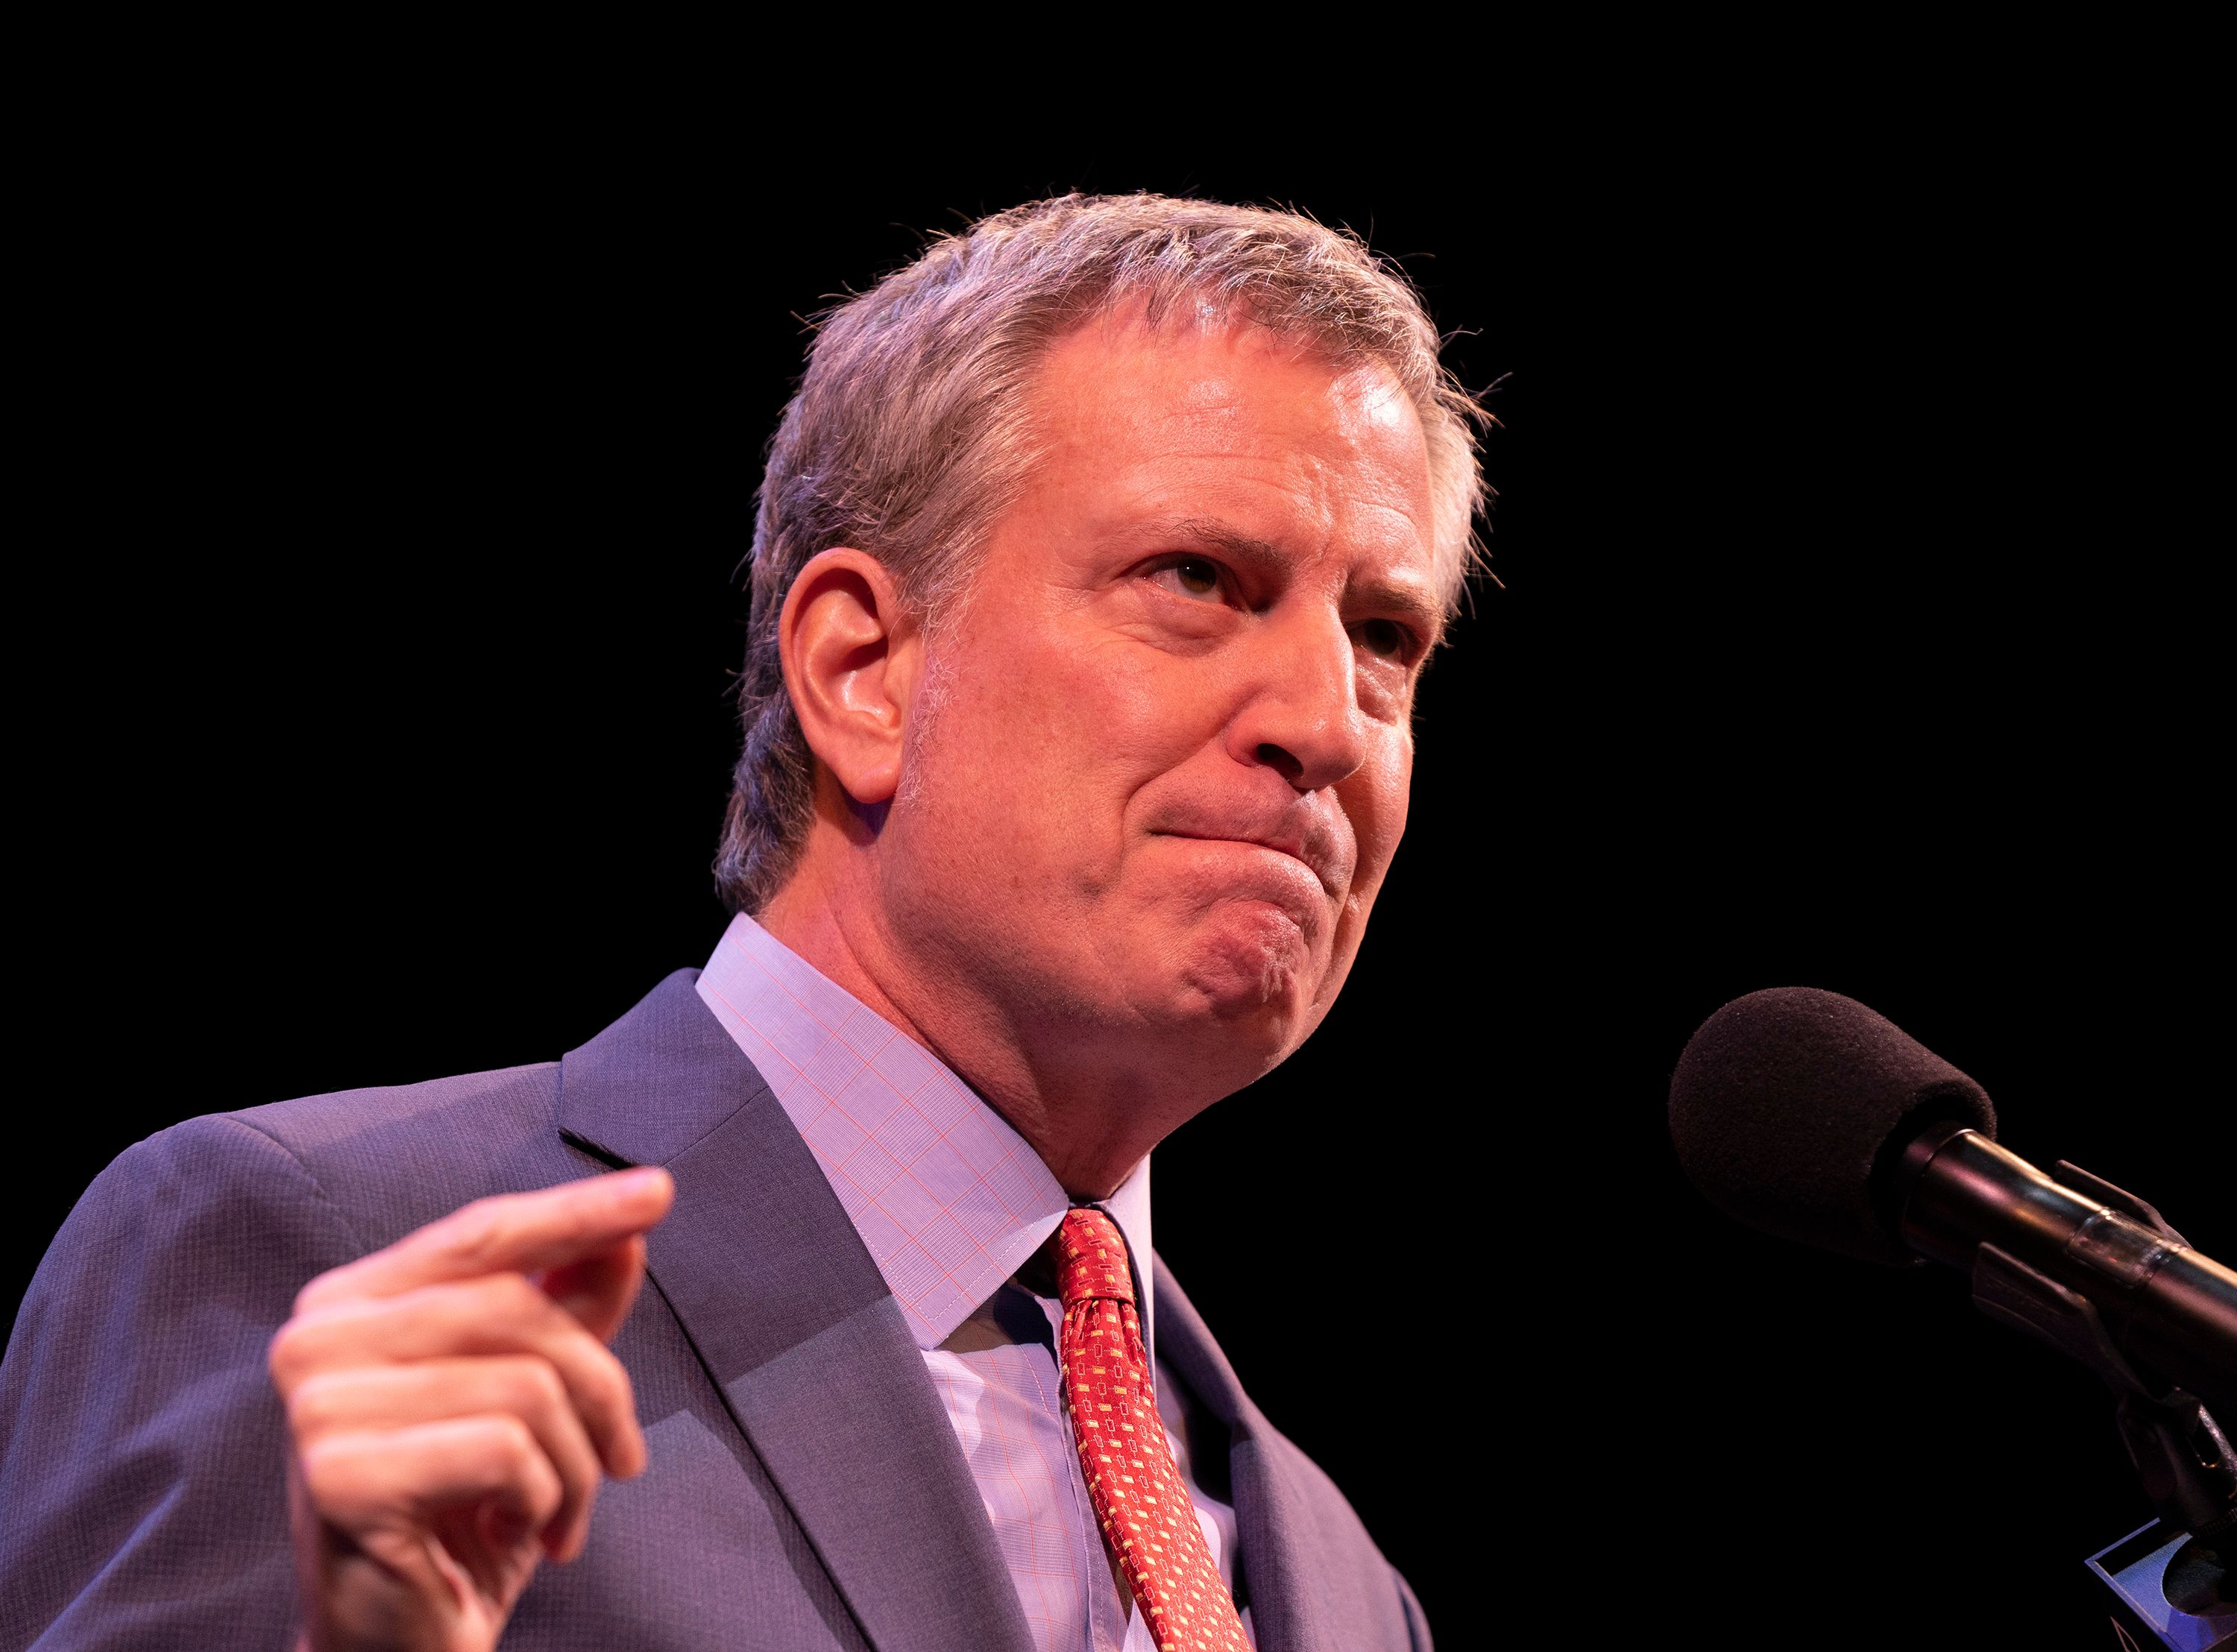 BAM HOWARD GILMAN OPERA HOUSE, NEW YORK, UNITED STATES - 2019/01/21: Mayor Bill de Blasio speaks during 33rd Brooklyn Tribute to Dr. Martin Luther King at BAM Howard Gilman Opera House. (Photo by Lev Radin/Pacific Press/LightRocket via Getty Images)